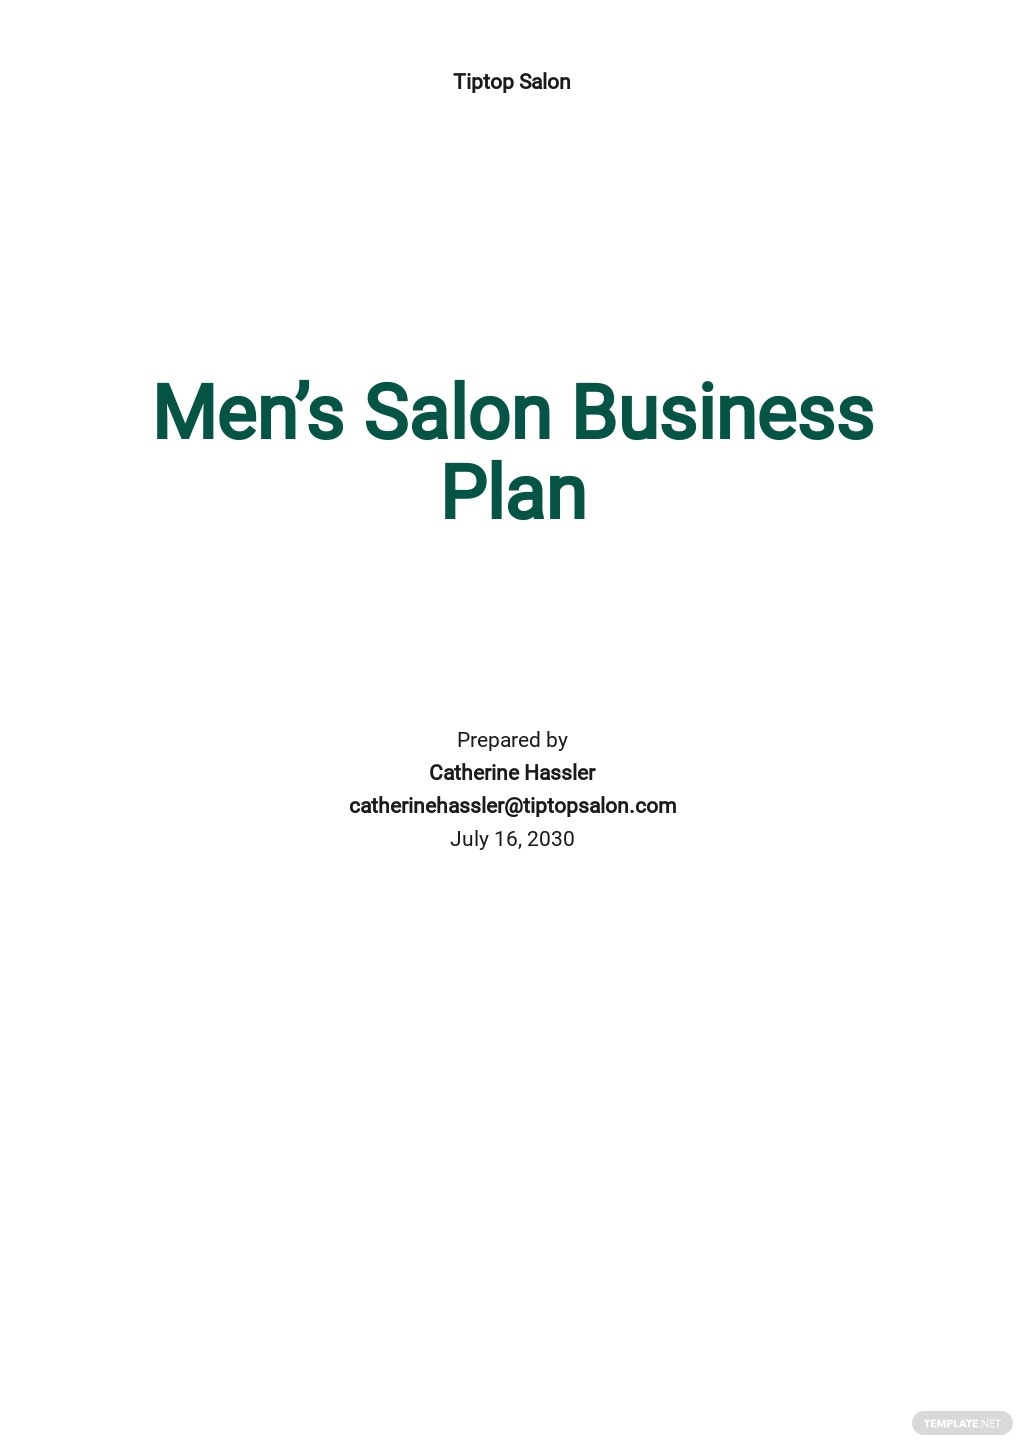 Men's Salon Business Plan Template.jpe